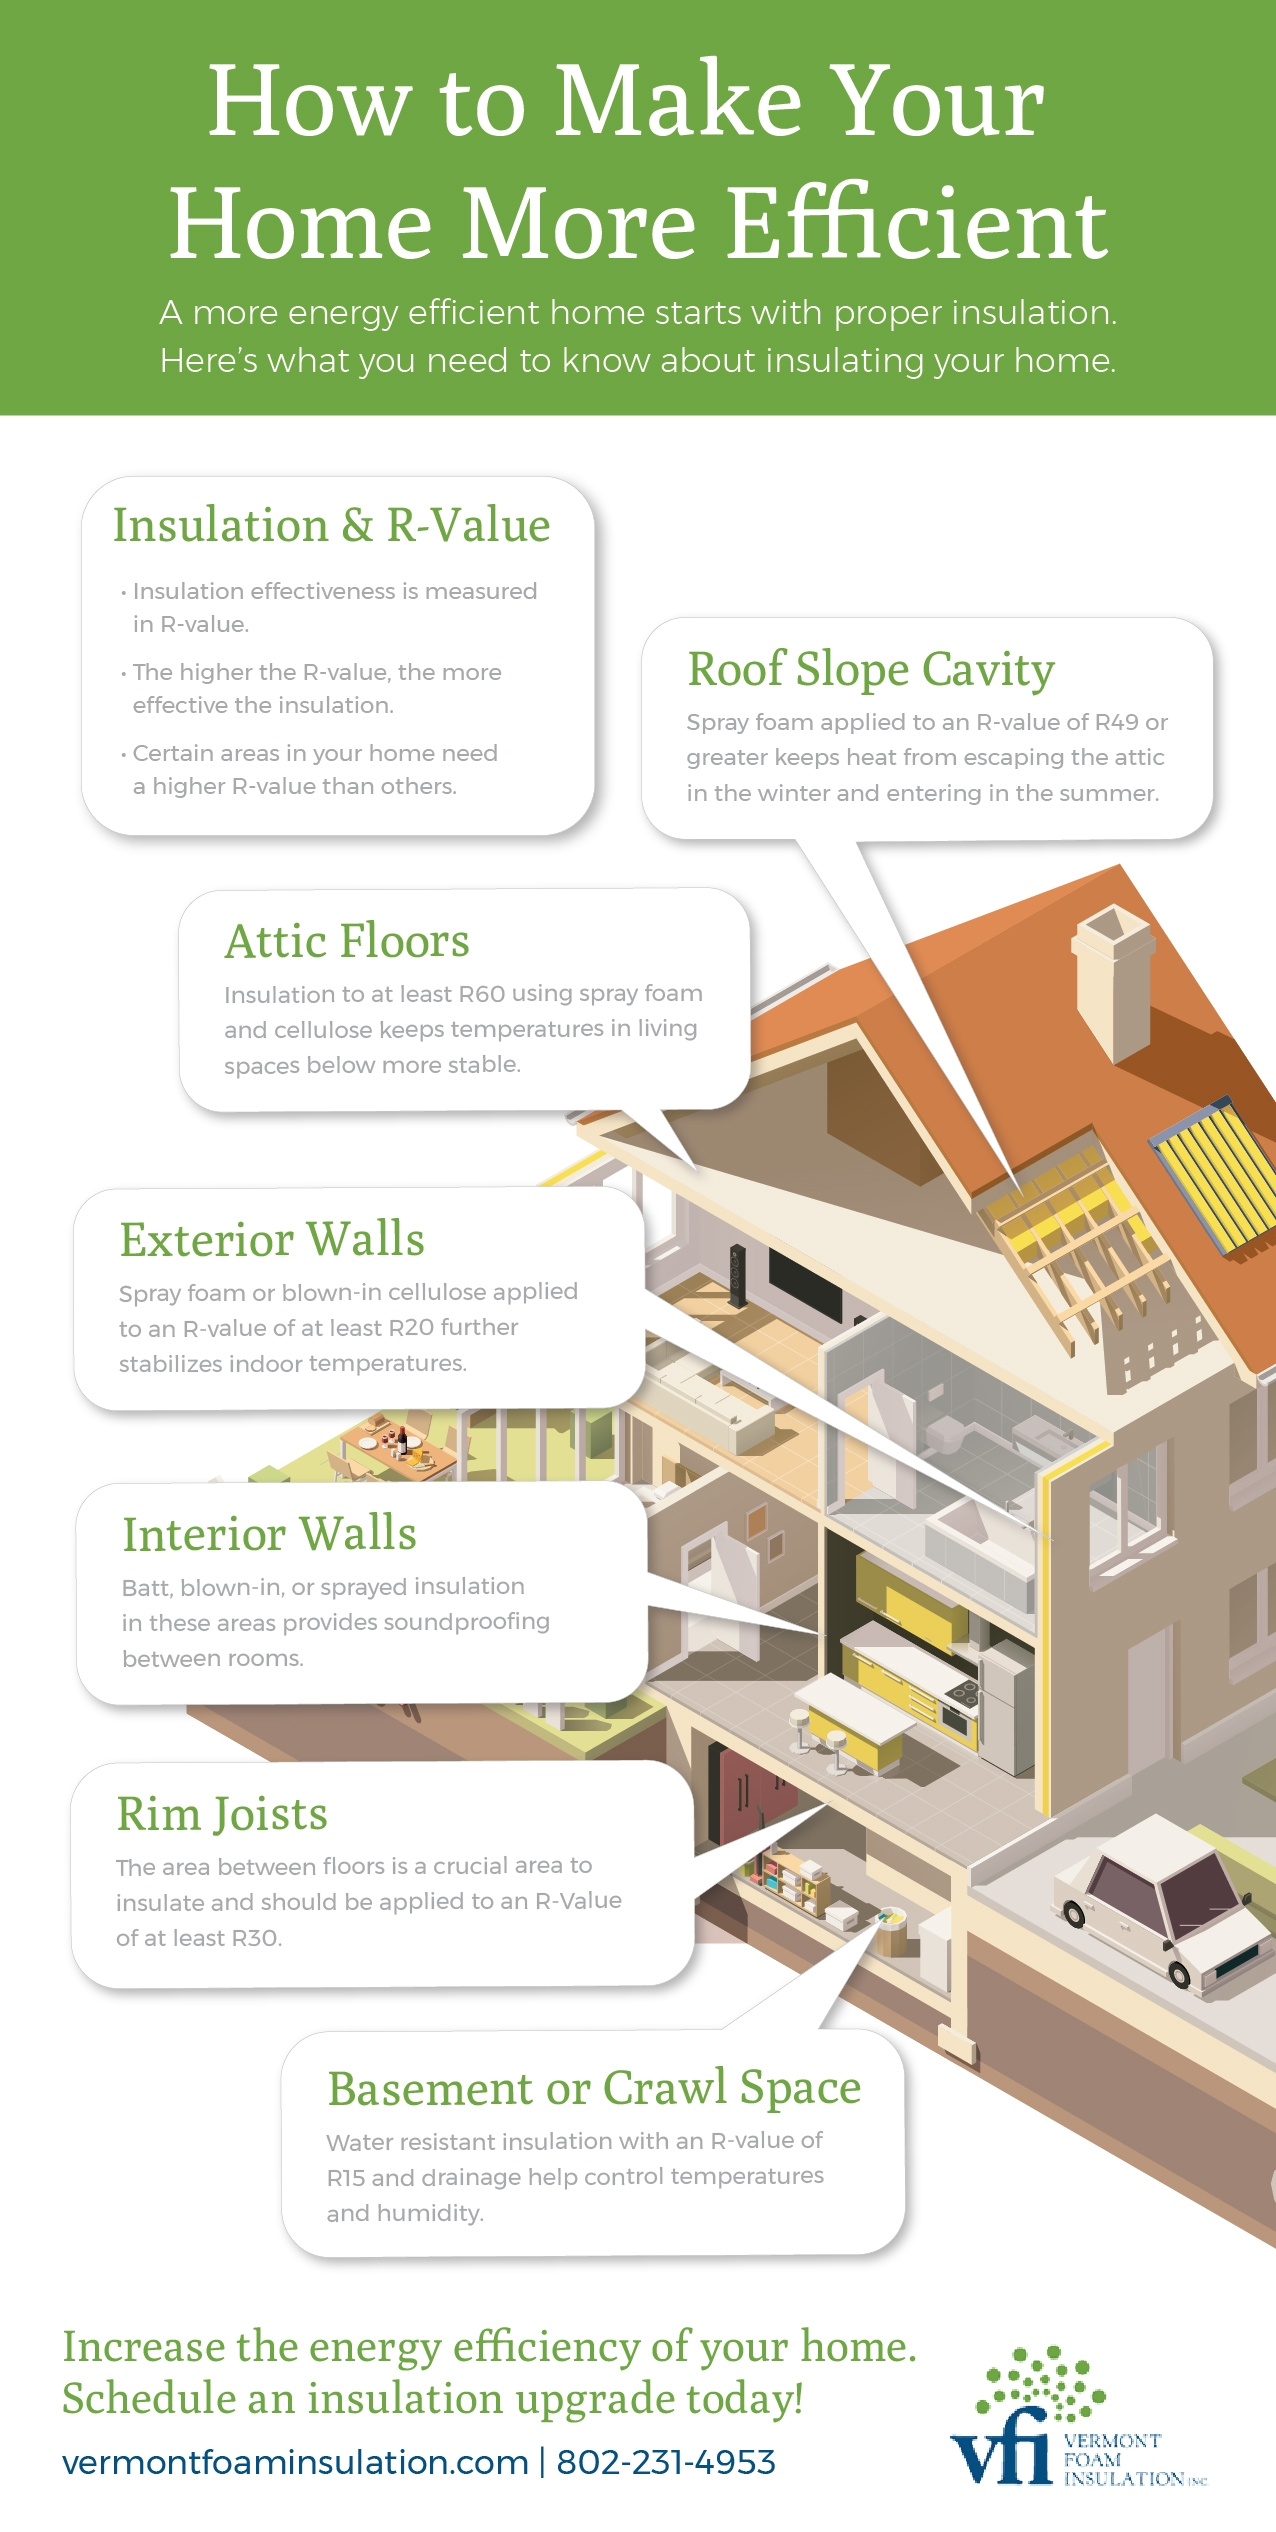 make your home more efficient infographic